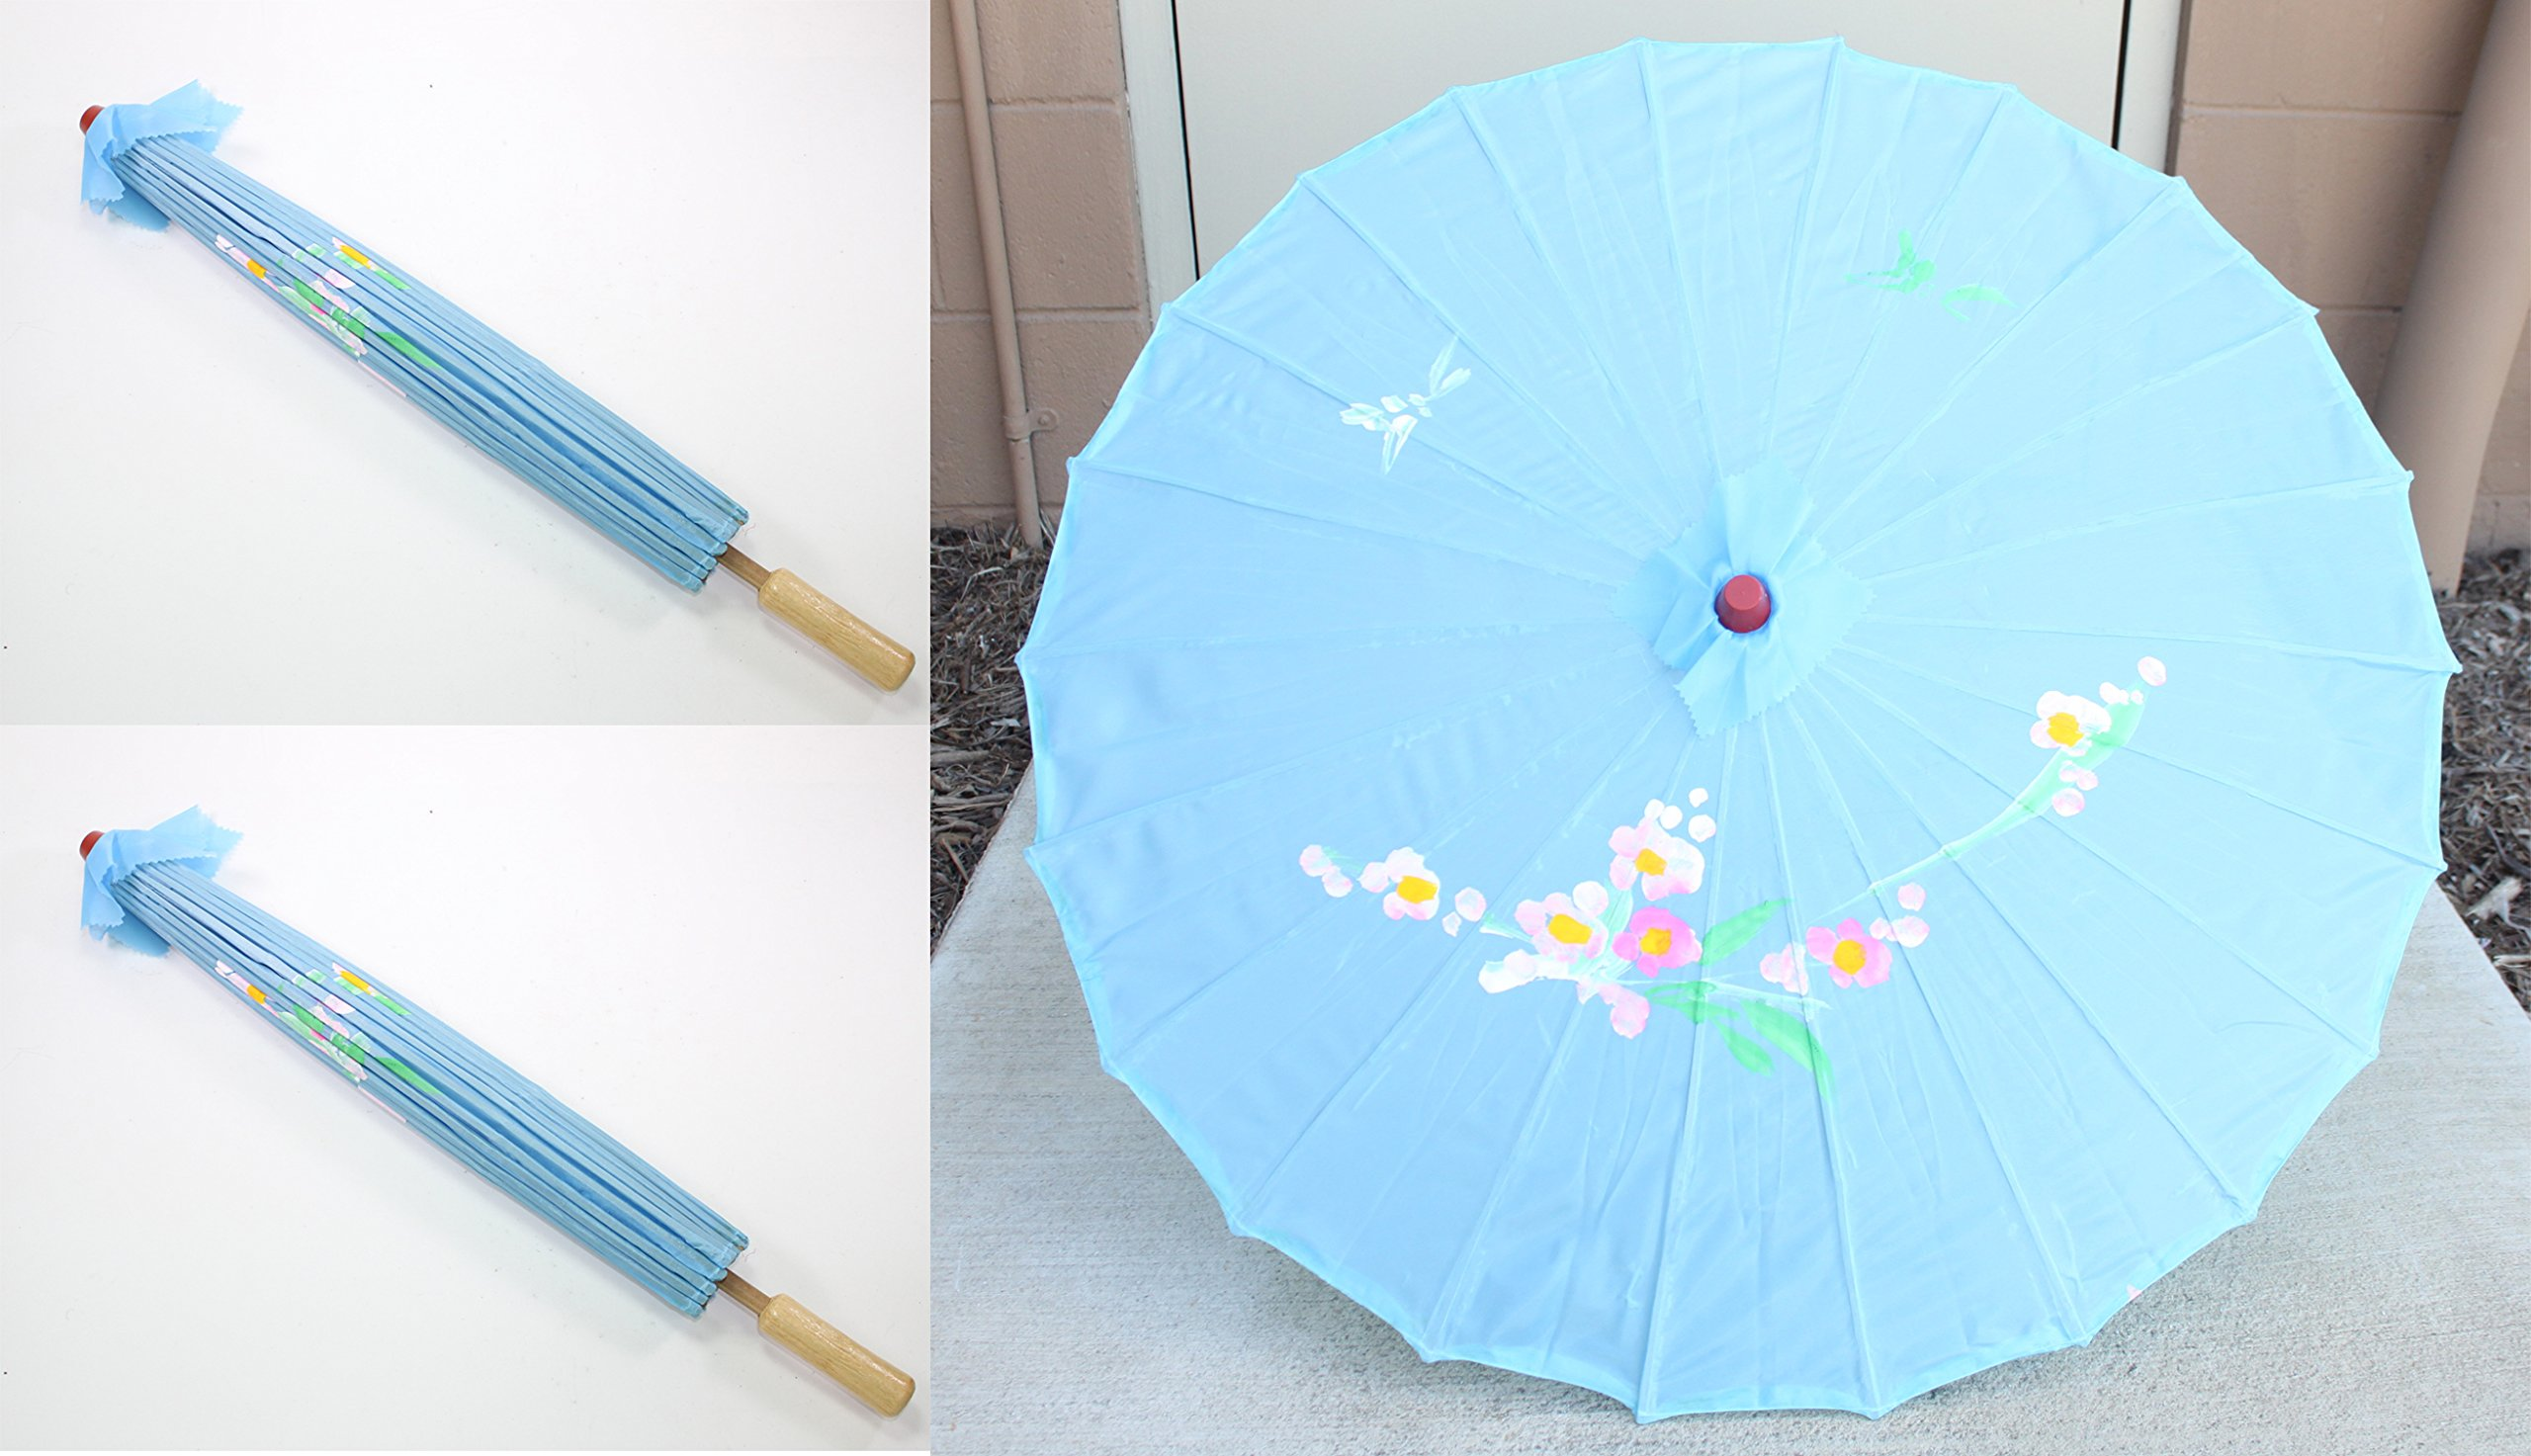 "We pay your sales tax Pair of 32"" Inch Diameter Light Blue Floral Pattern Wood Bamboo Nylon Parasol Umbrella Backyard Decoration Gift - Measurements: 32"" (L) x 22"" (H) when it's open. 2 umbrellas. Made out of wood, bamboo and nylon Can provide you with a nice amount of shade during hot or sunny days - shades-parasols, patio-furniture, patio - 81Z OEtZKsL -"